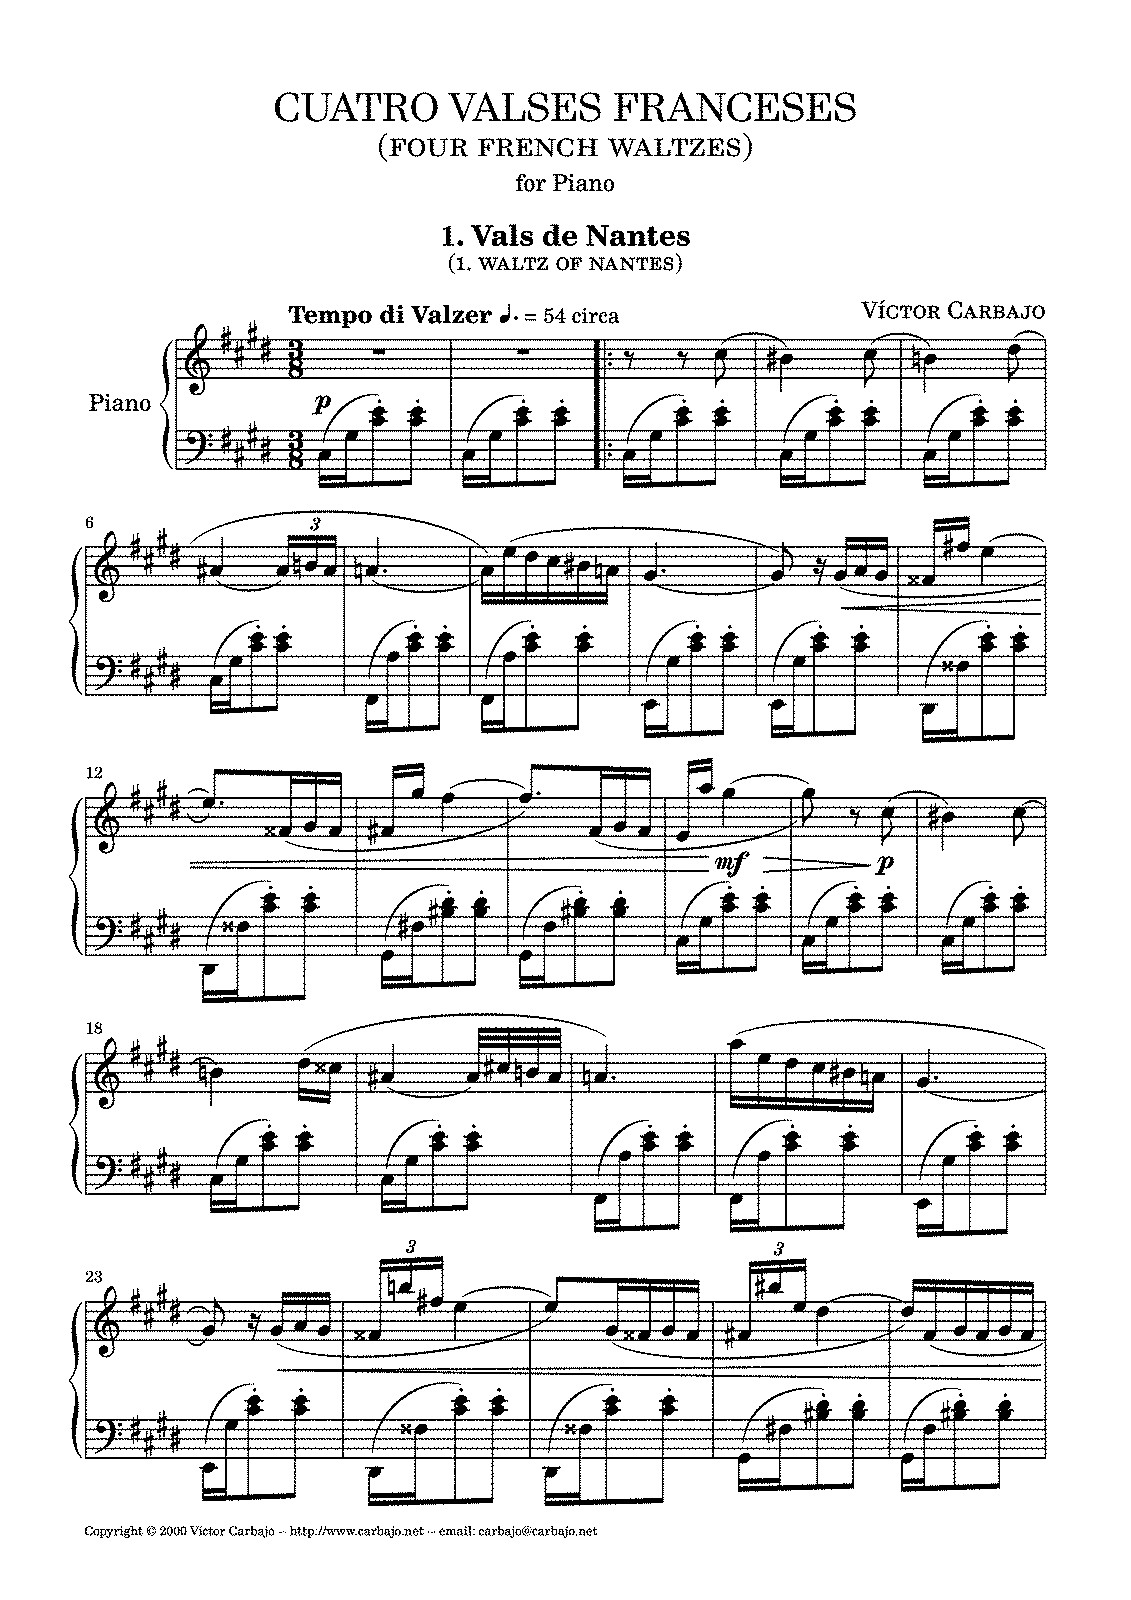 PMLP313463-carbajo-4 french waltzes-2000-pf.pdf